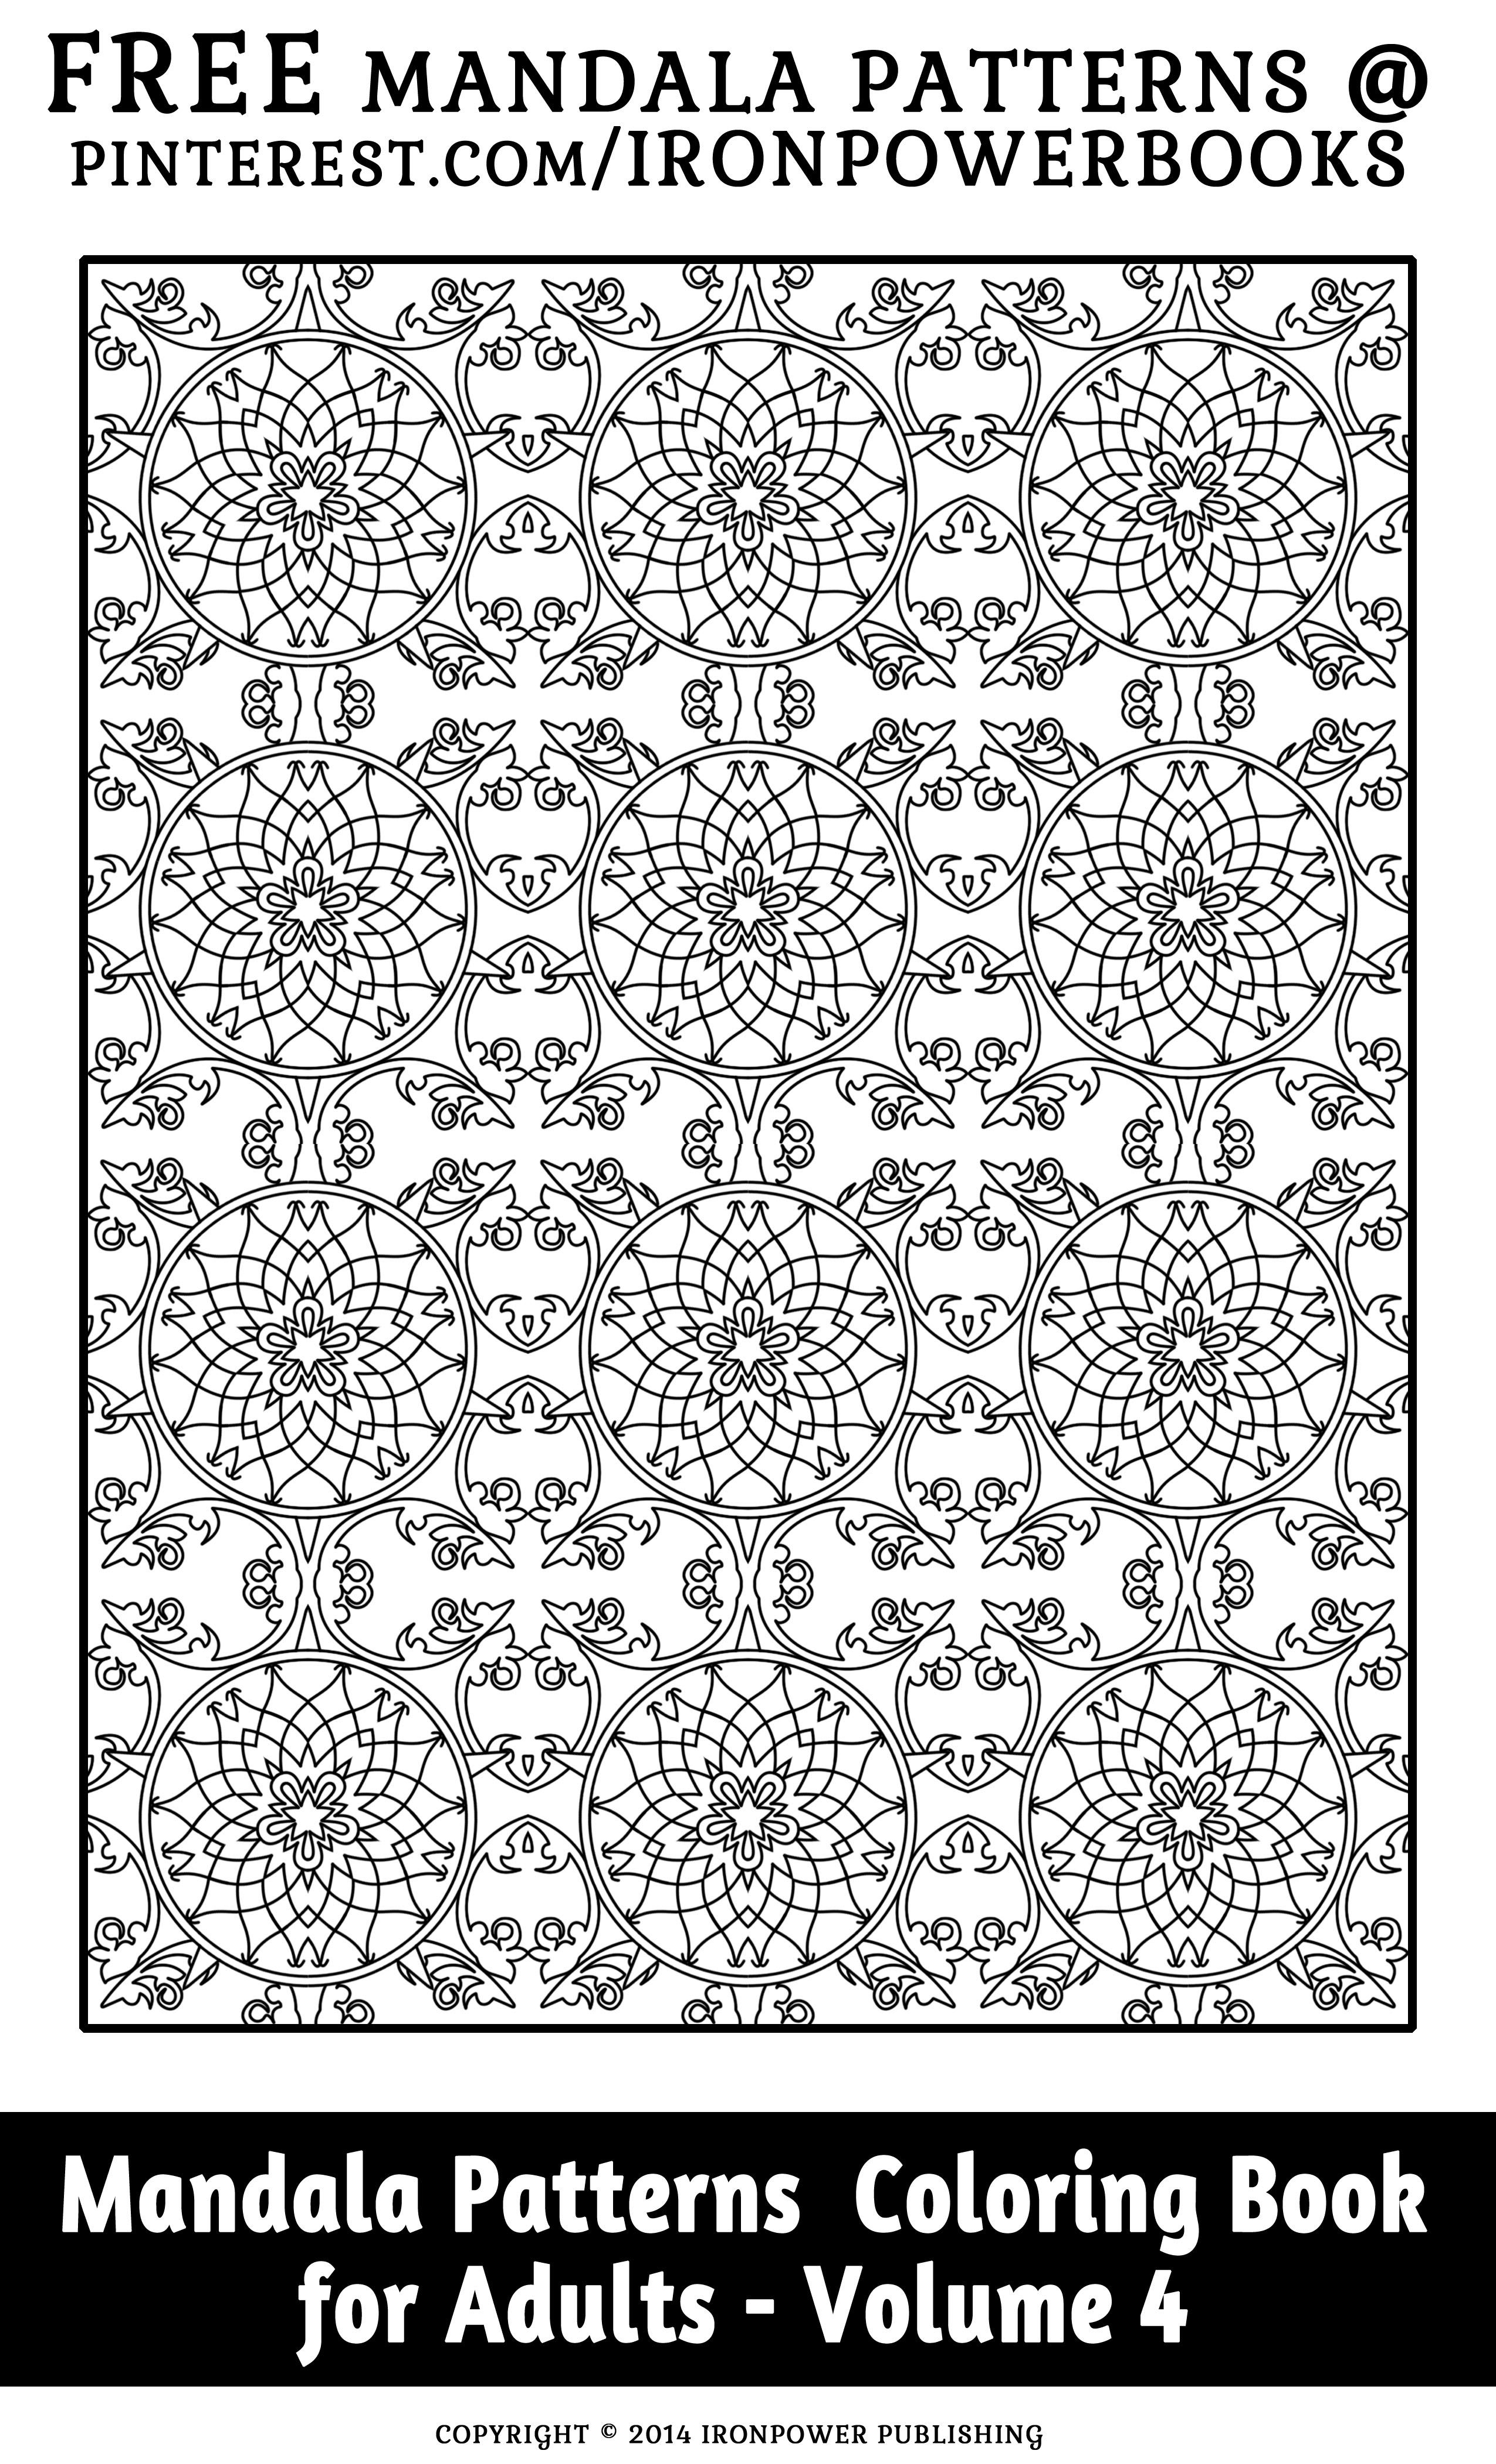 Print and Color Mandalas Online | This pin is free for you to Color ...